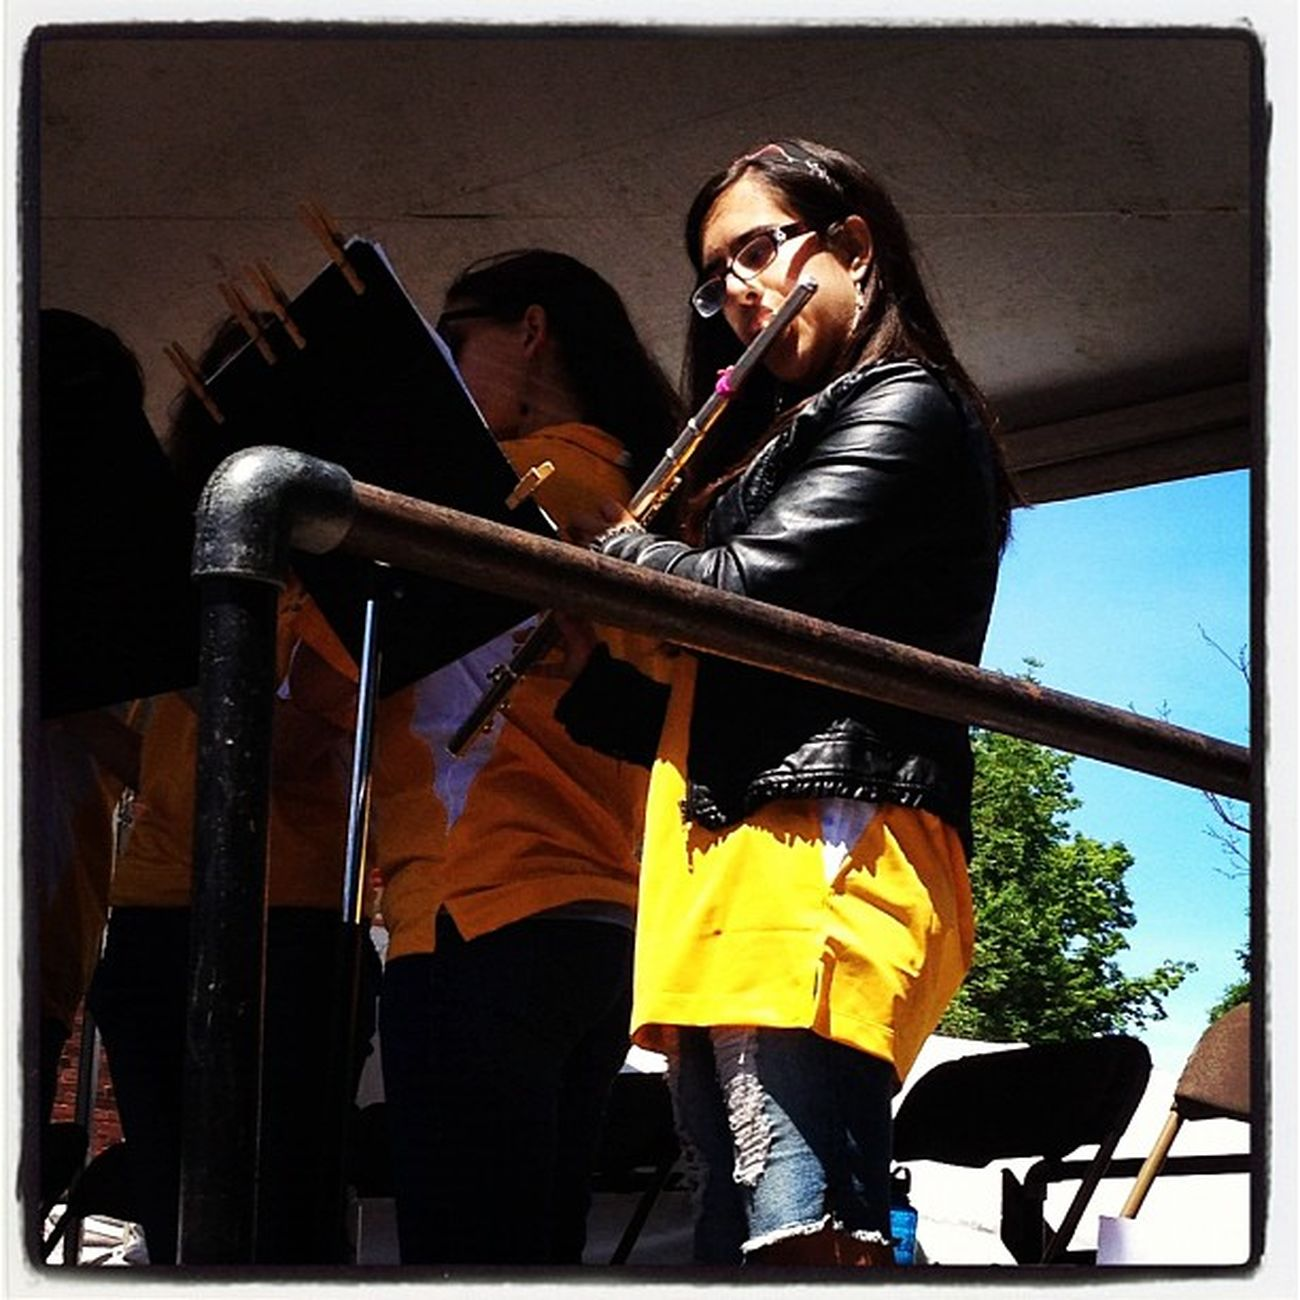 My Offspring Performs at Burlington Jazz Festival 2012. #btv #vt #miltonvt Mhs  Instagood Band Jazzfest IPhoneography Vt Happy Btv Downtown 802 Music Miltonvt Jazz Vt_scene Proud Vermont_scene Offspring Photoofday 365 High_school Burlington Jazzband Vermont Church_street Instamood Proud_dad Musical PhotoADay